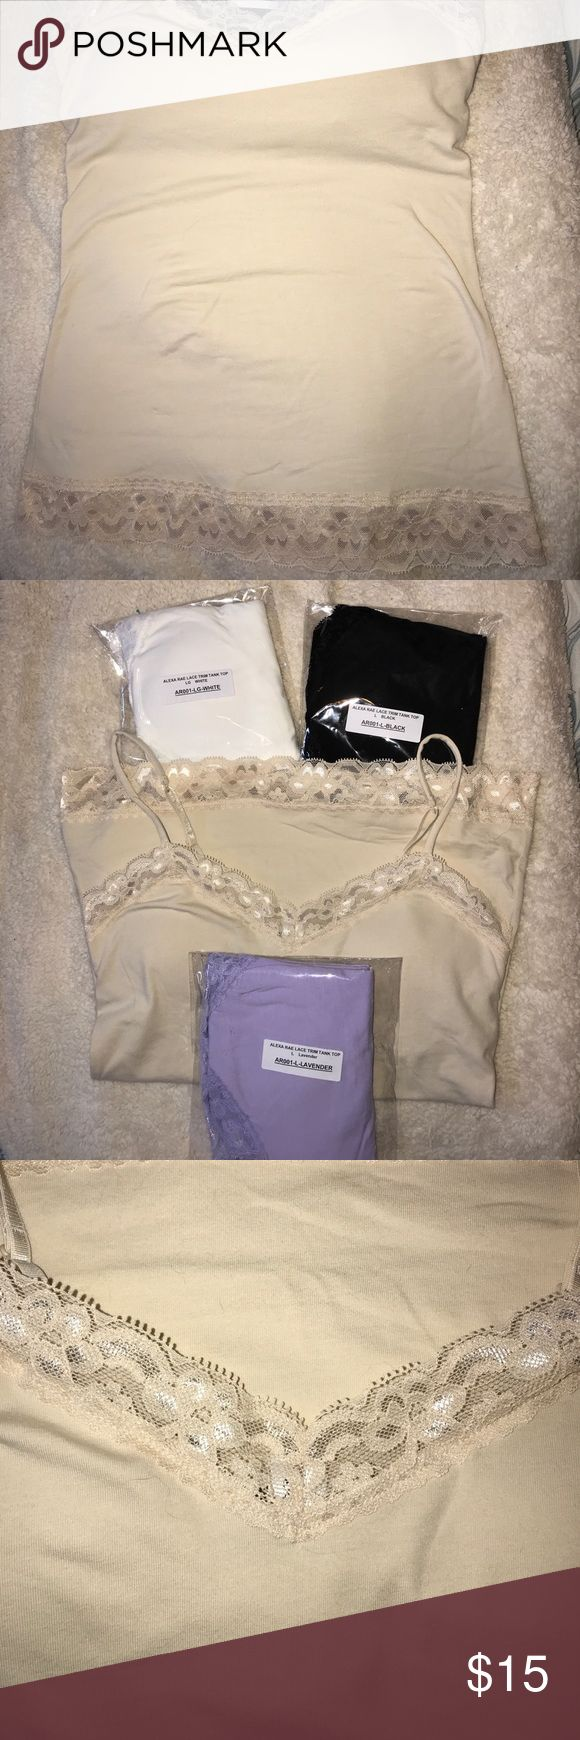 JUST ADDED 4 CAMISOLE BUNDLE NW/OT Alexa Rae lace tank tops with shelf bra, padded. Pads can be removed. 1 white, 1 black, 1 cream and 1 lavender. They all go as a bundle. Size large but fits like a medium. Alexa Rae Tops Camisoles